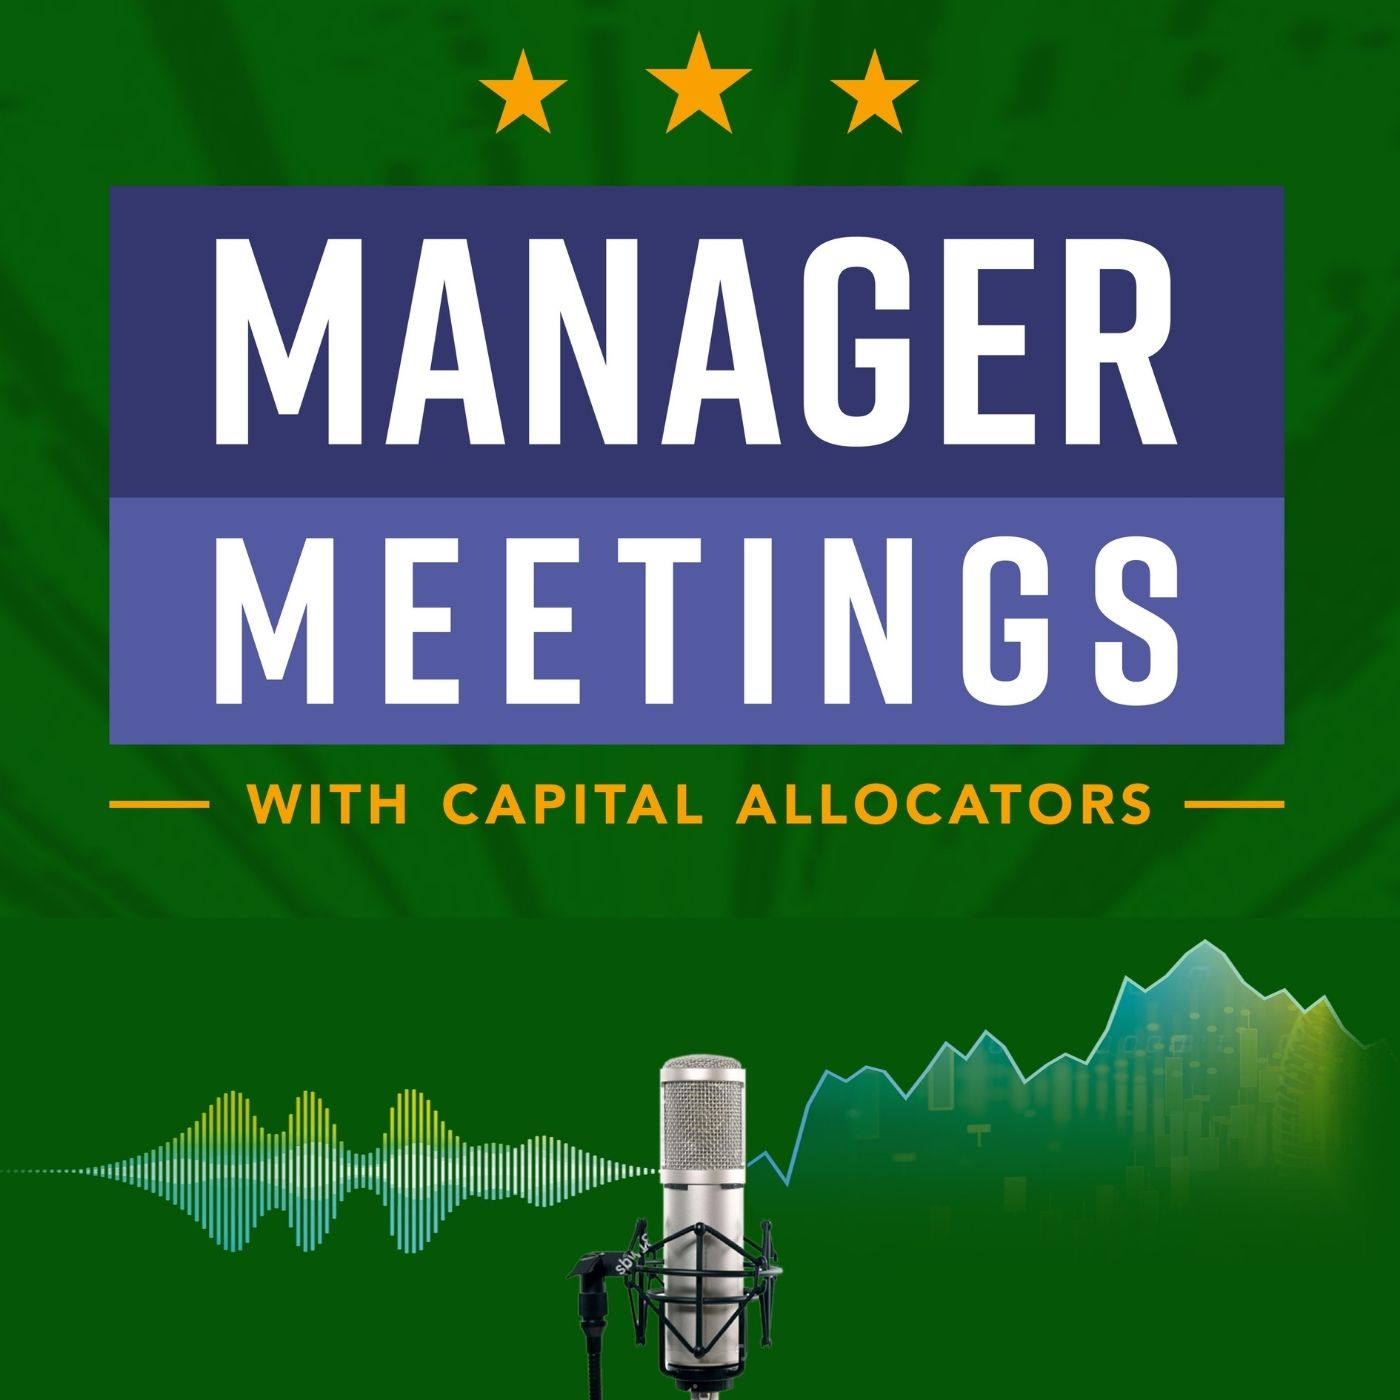 Mike Smith and Nikhil Basu Trivedi – Footwork Ventures (Manager Meetings, EP.12)